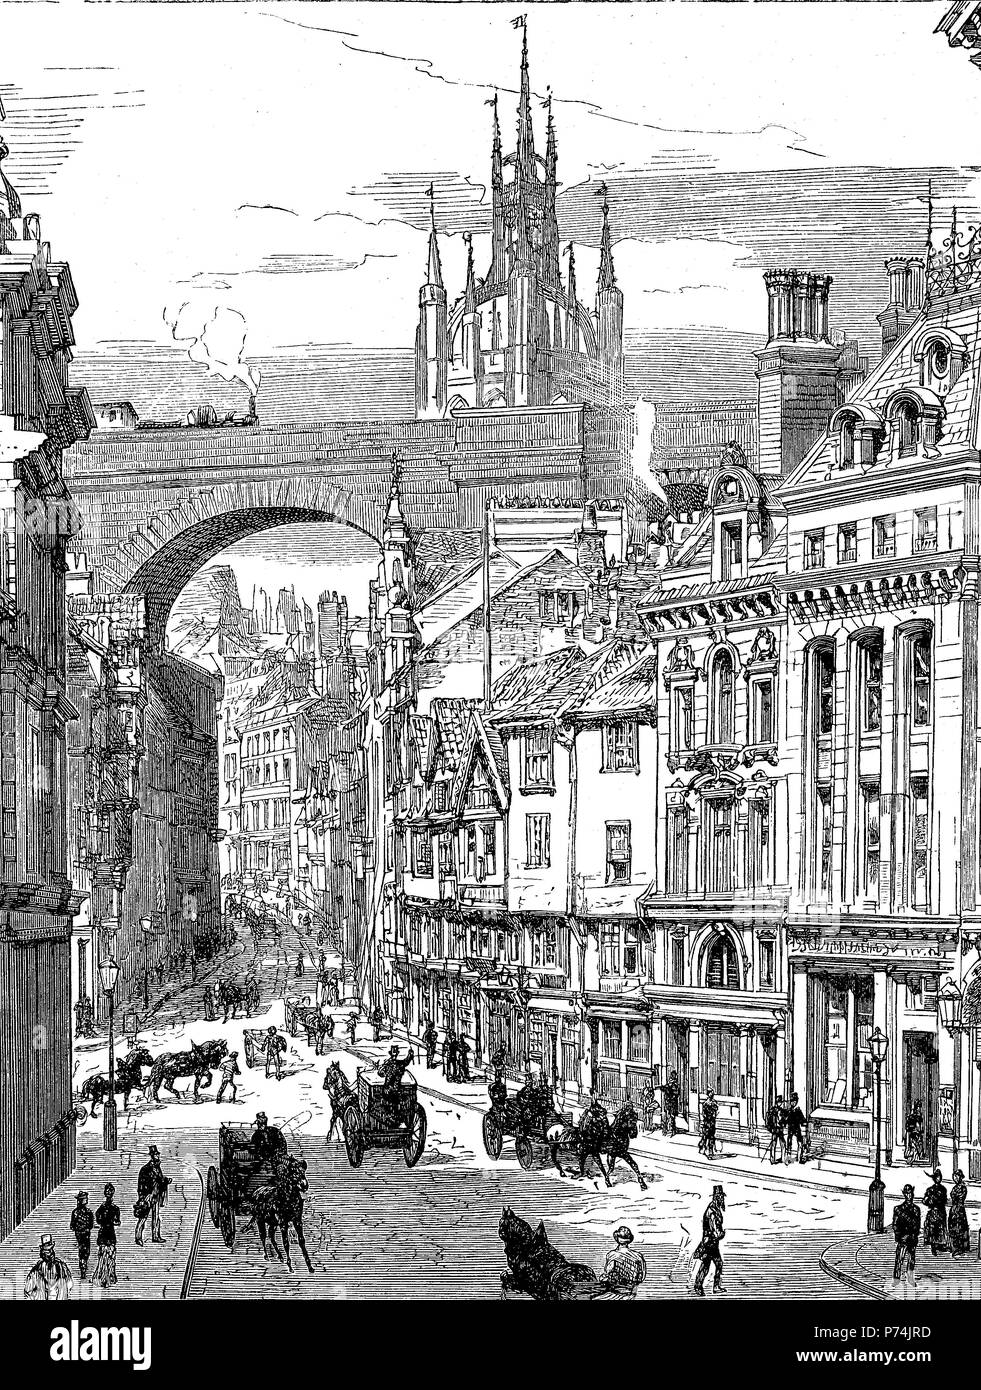 Dean Street at Newcastle, England, digital improved reproduction from an original print from the year 1881 - Stock Image